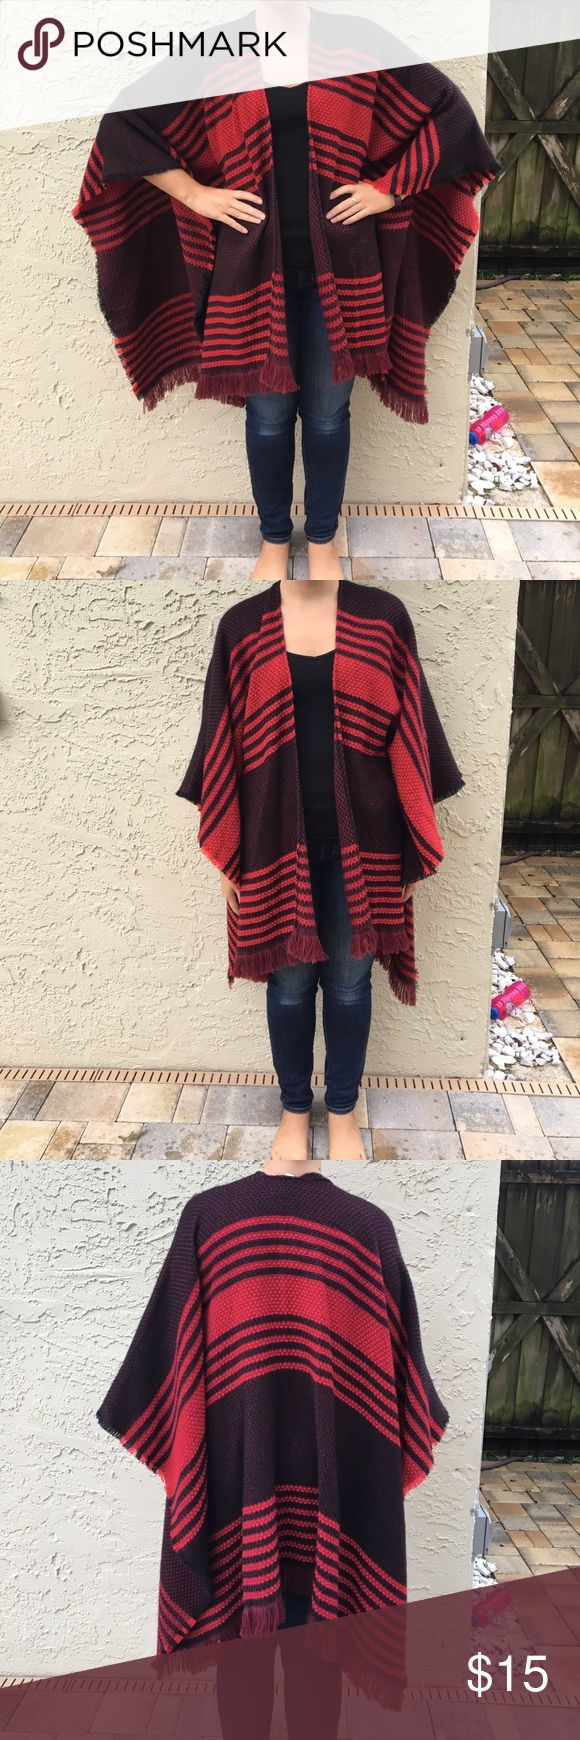 Winter poncho/Shaw Black, Maroon, and Red Shaw, thick and perfect for winter Merona Other